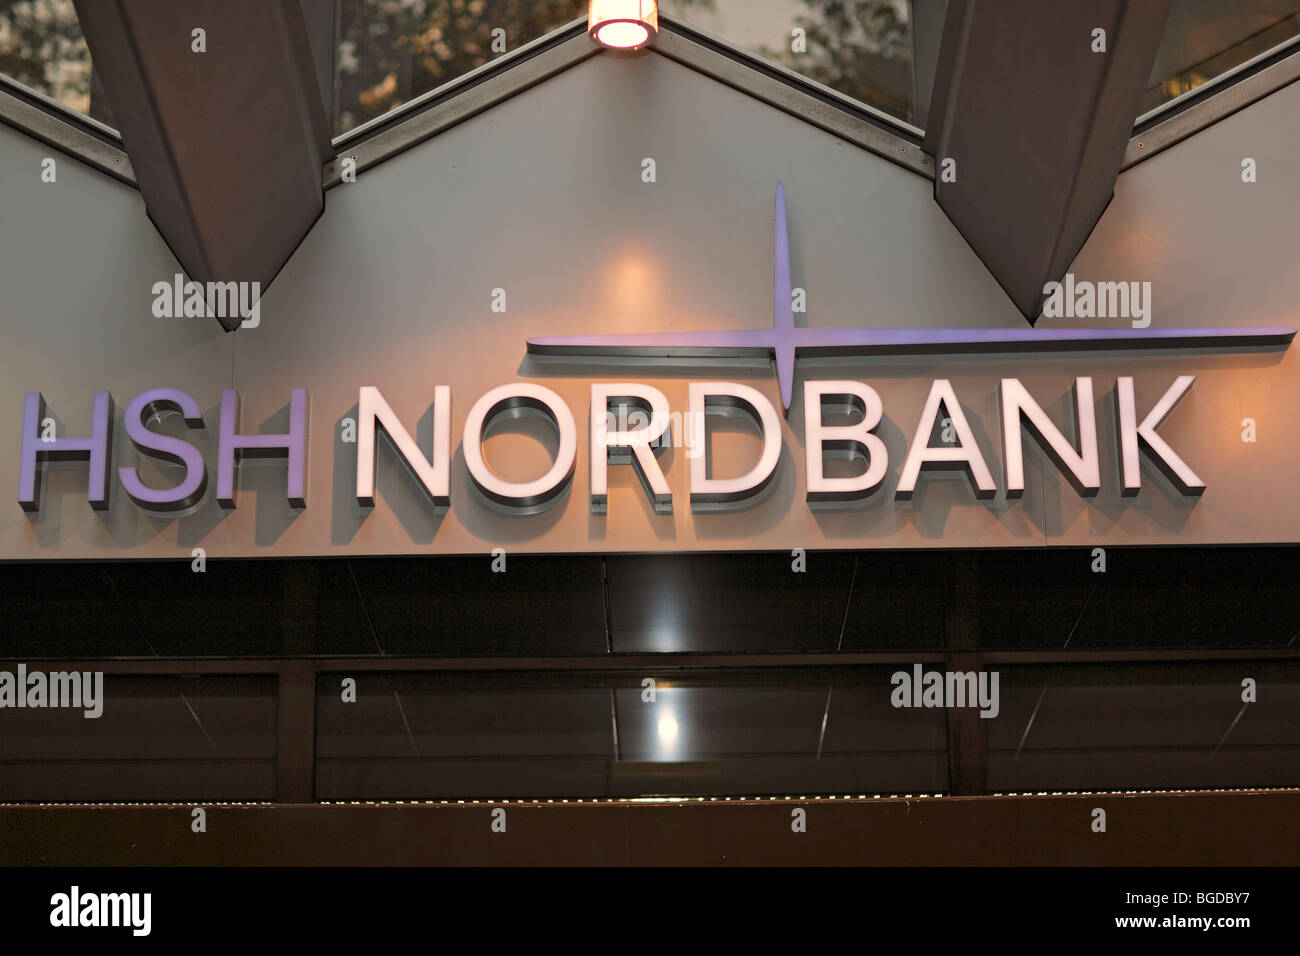 HSH Nordbank, financial crisis 2009, branch in Hamburg, Germany, Europe - Stock Image